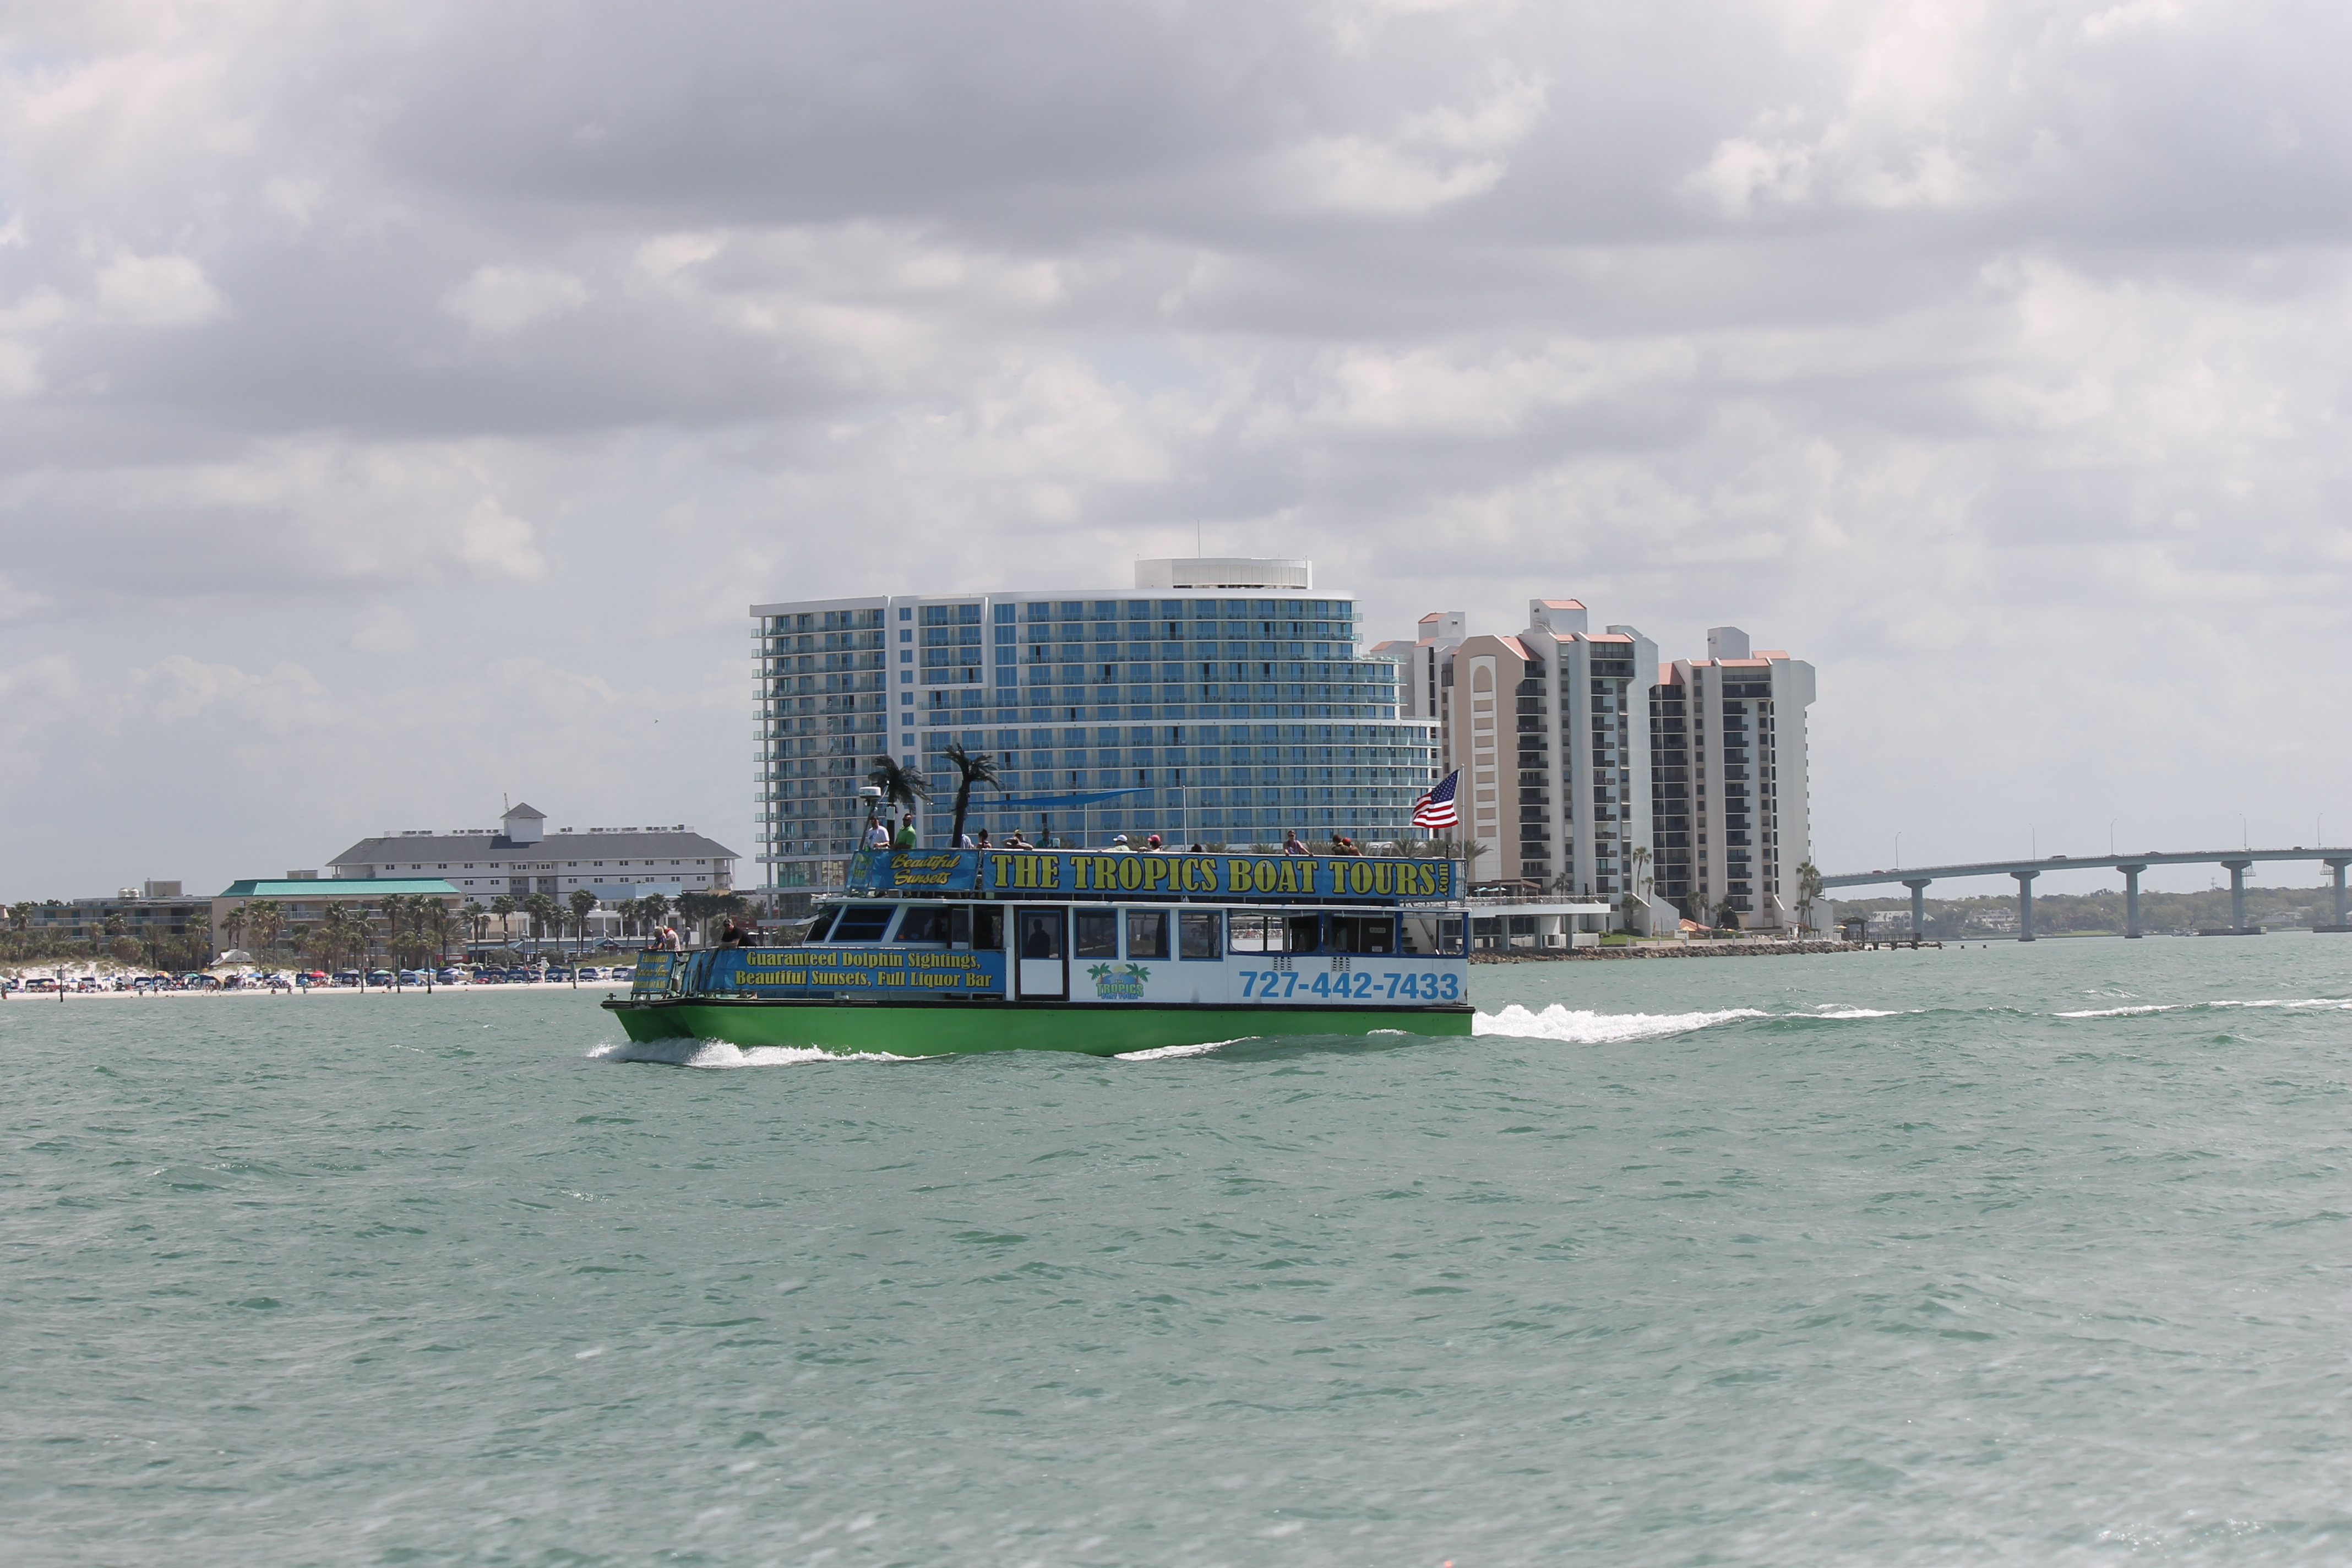 Tropics Boat Tours Clearwater